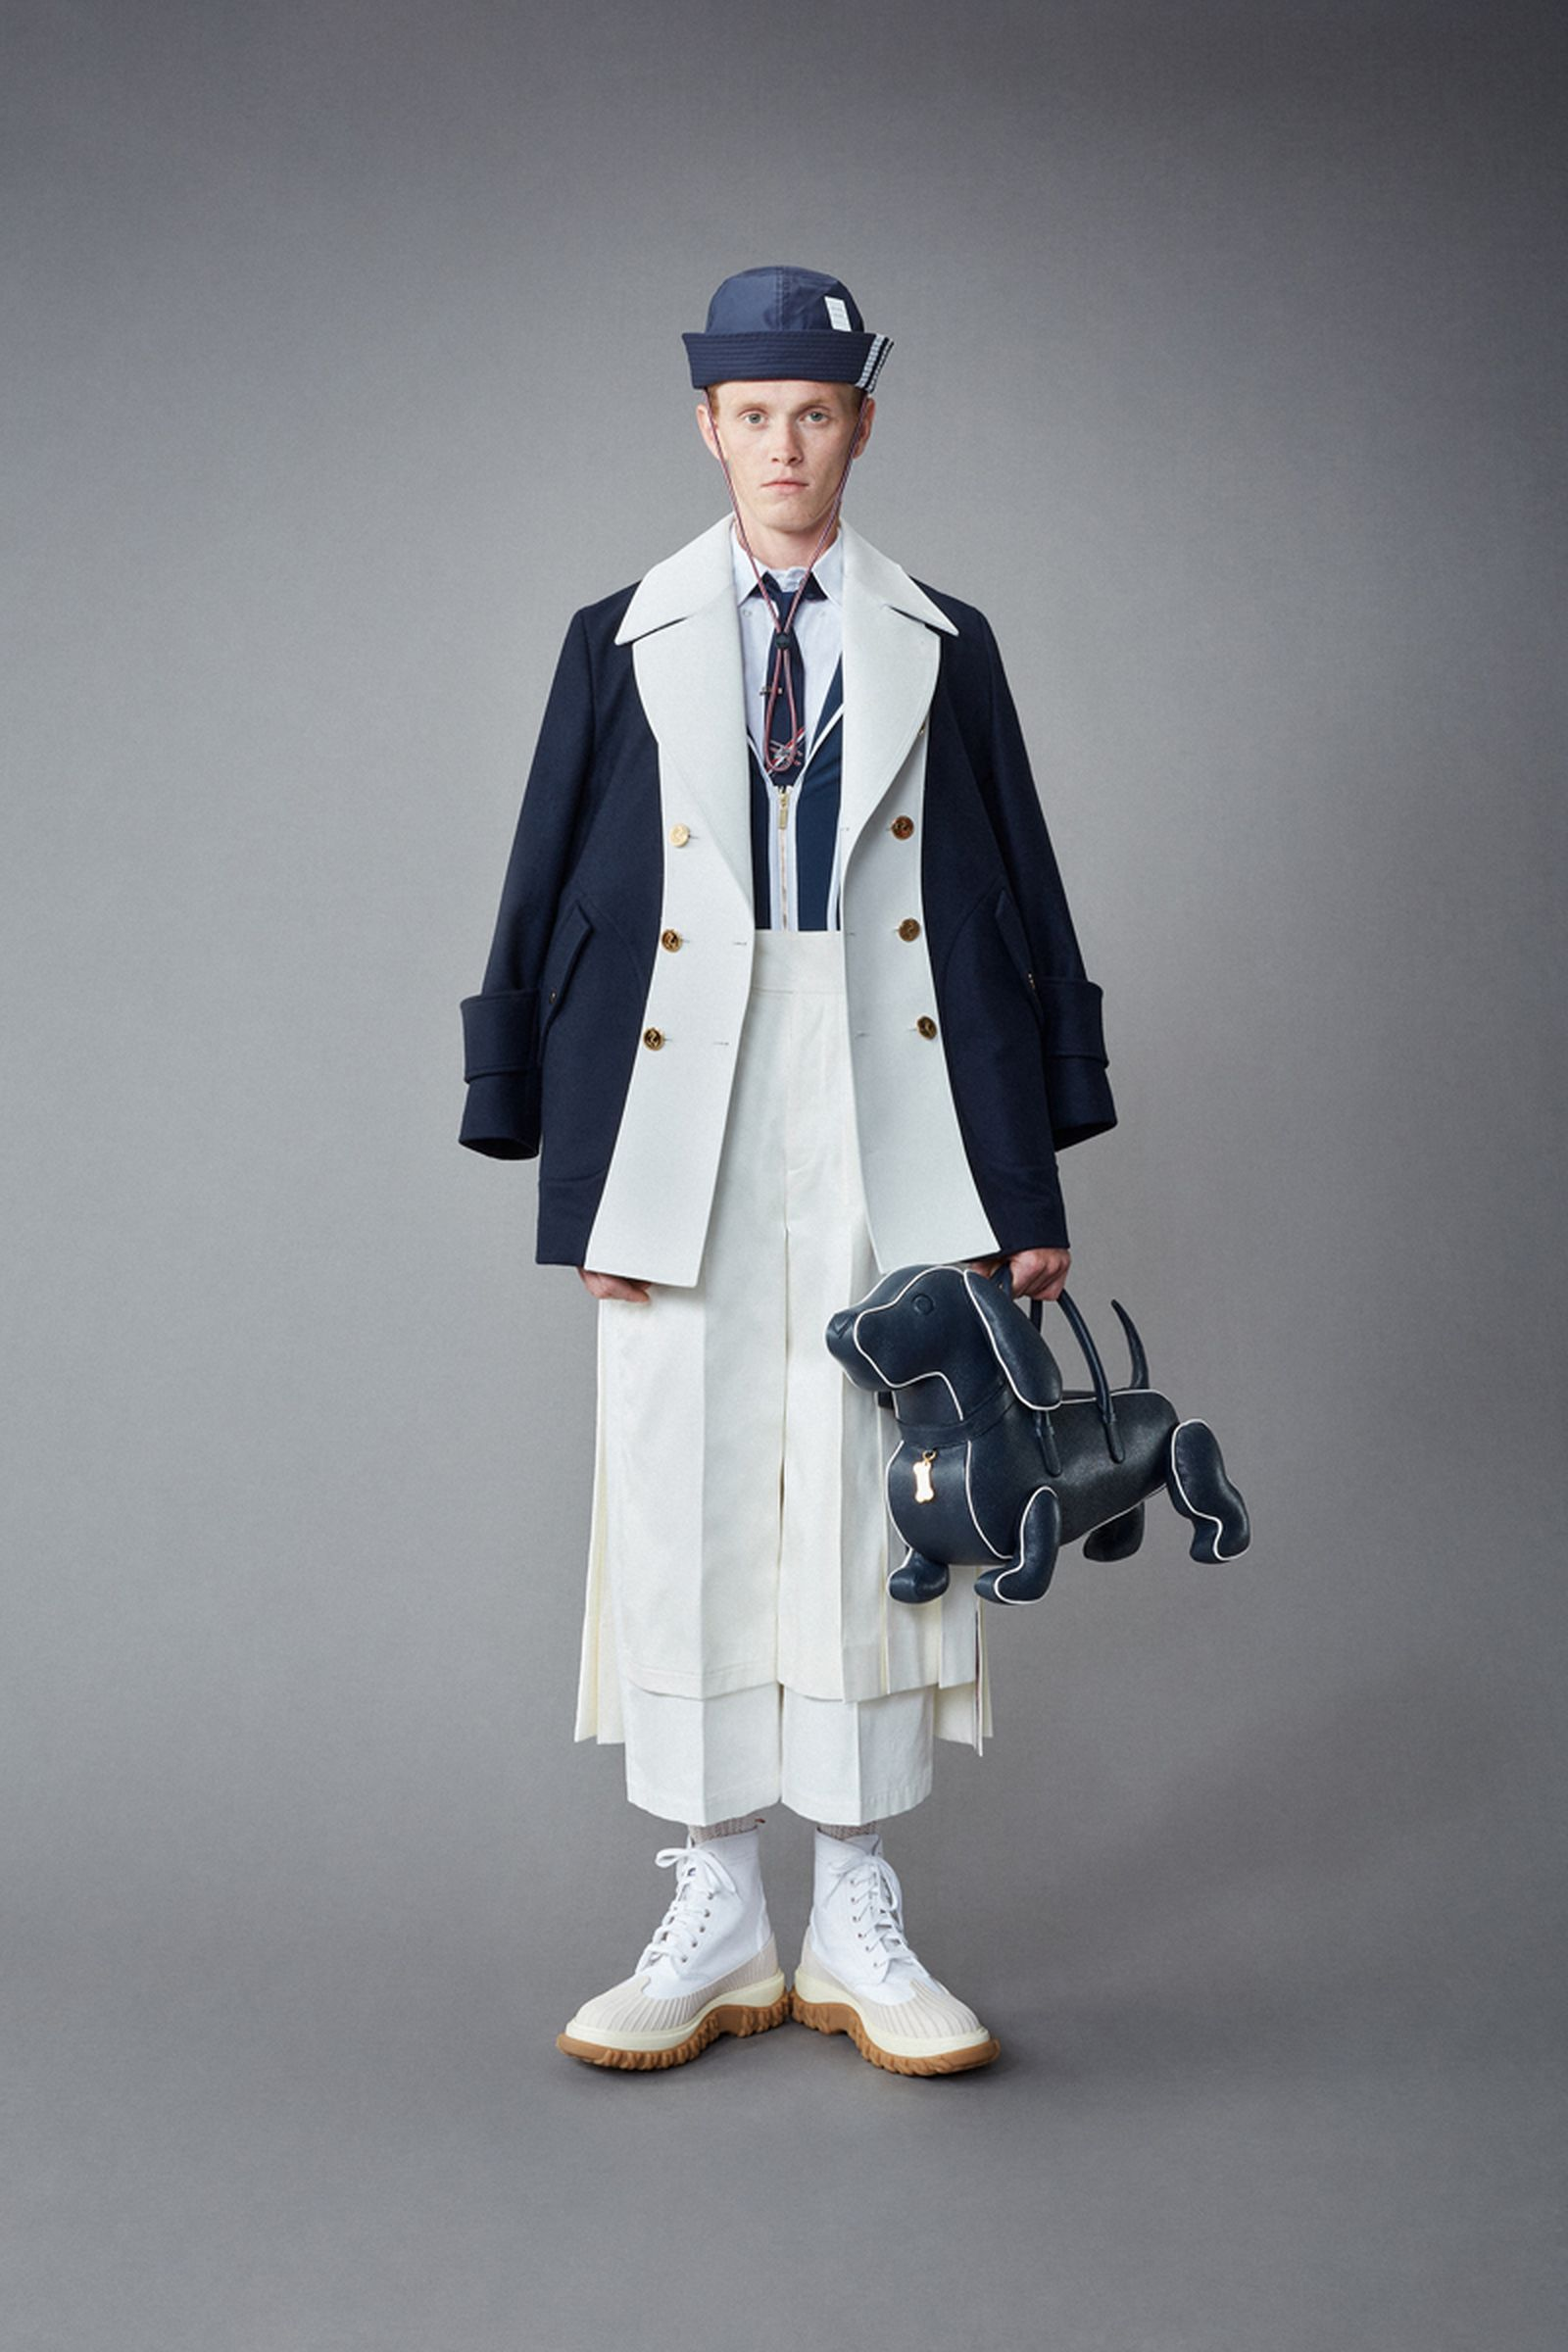 thom-browne-resort-2022-collection- (21)